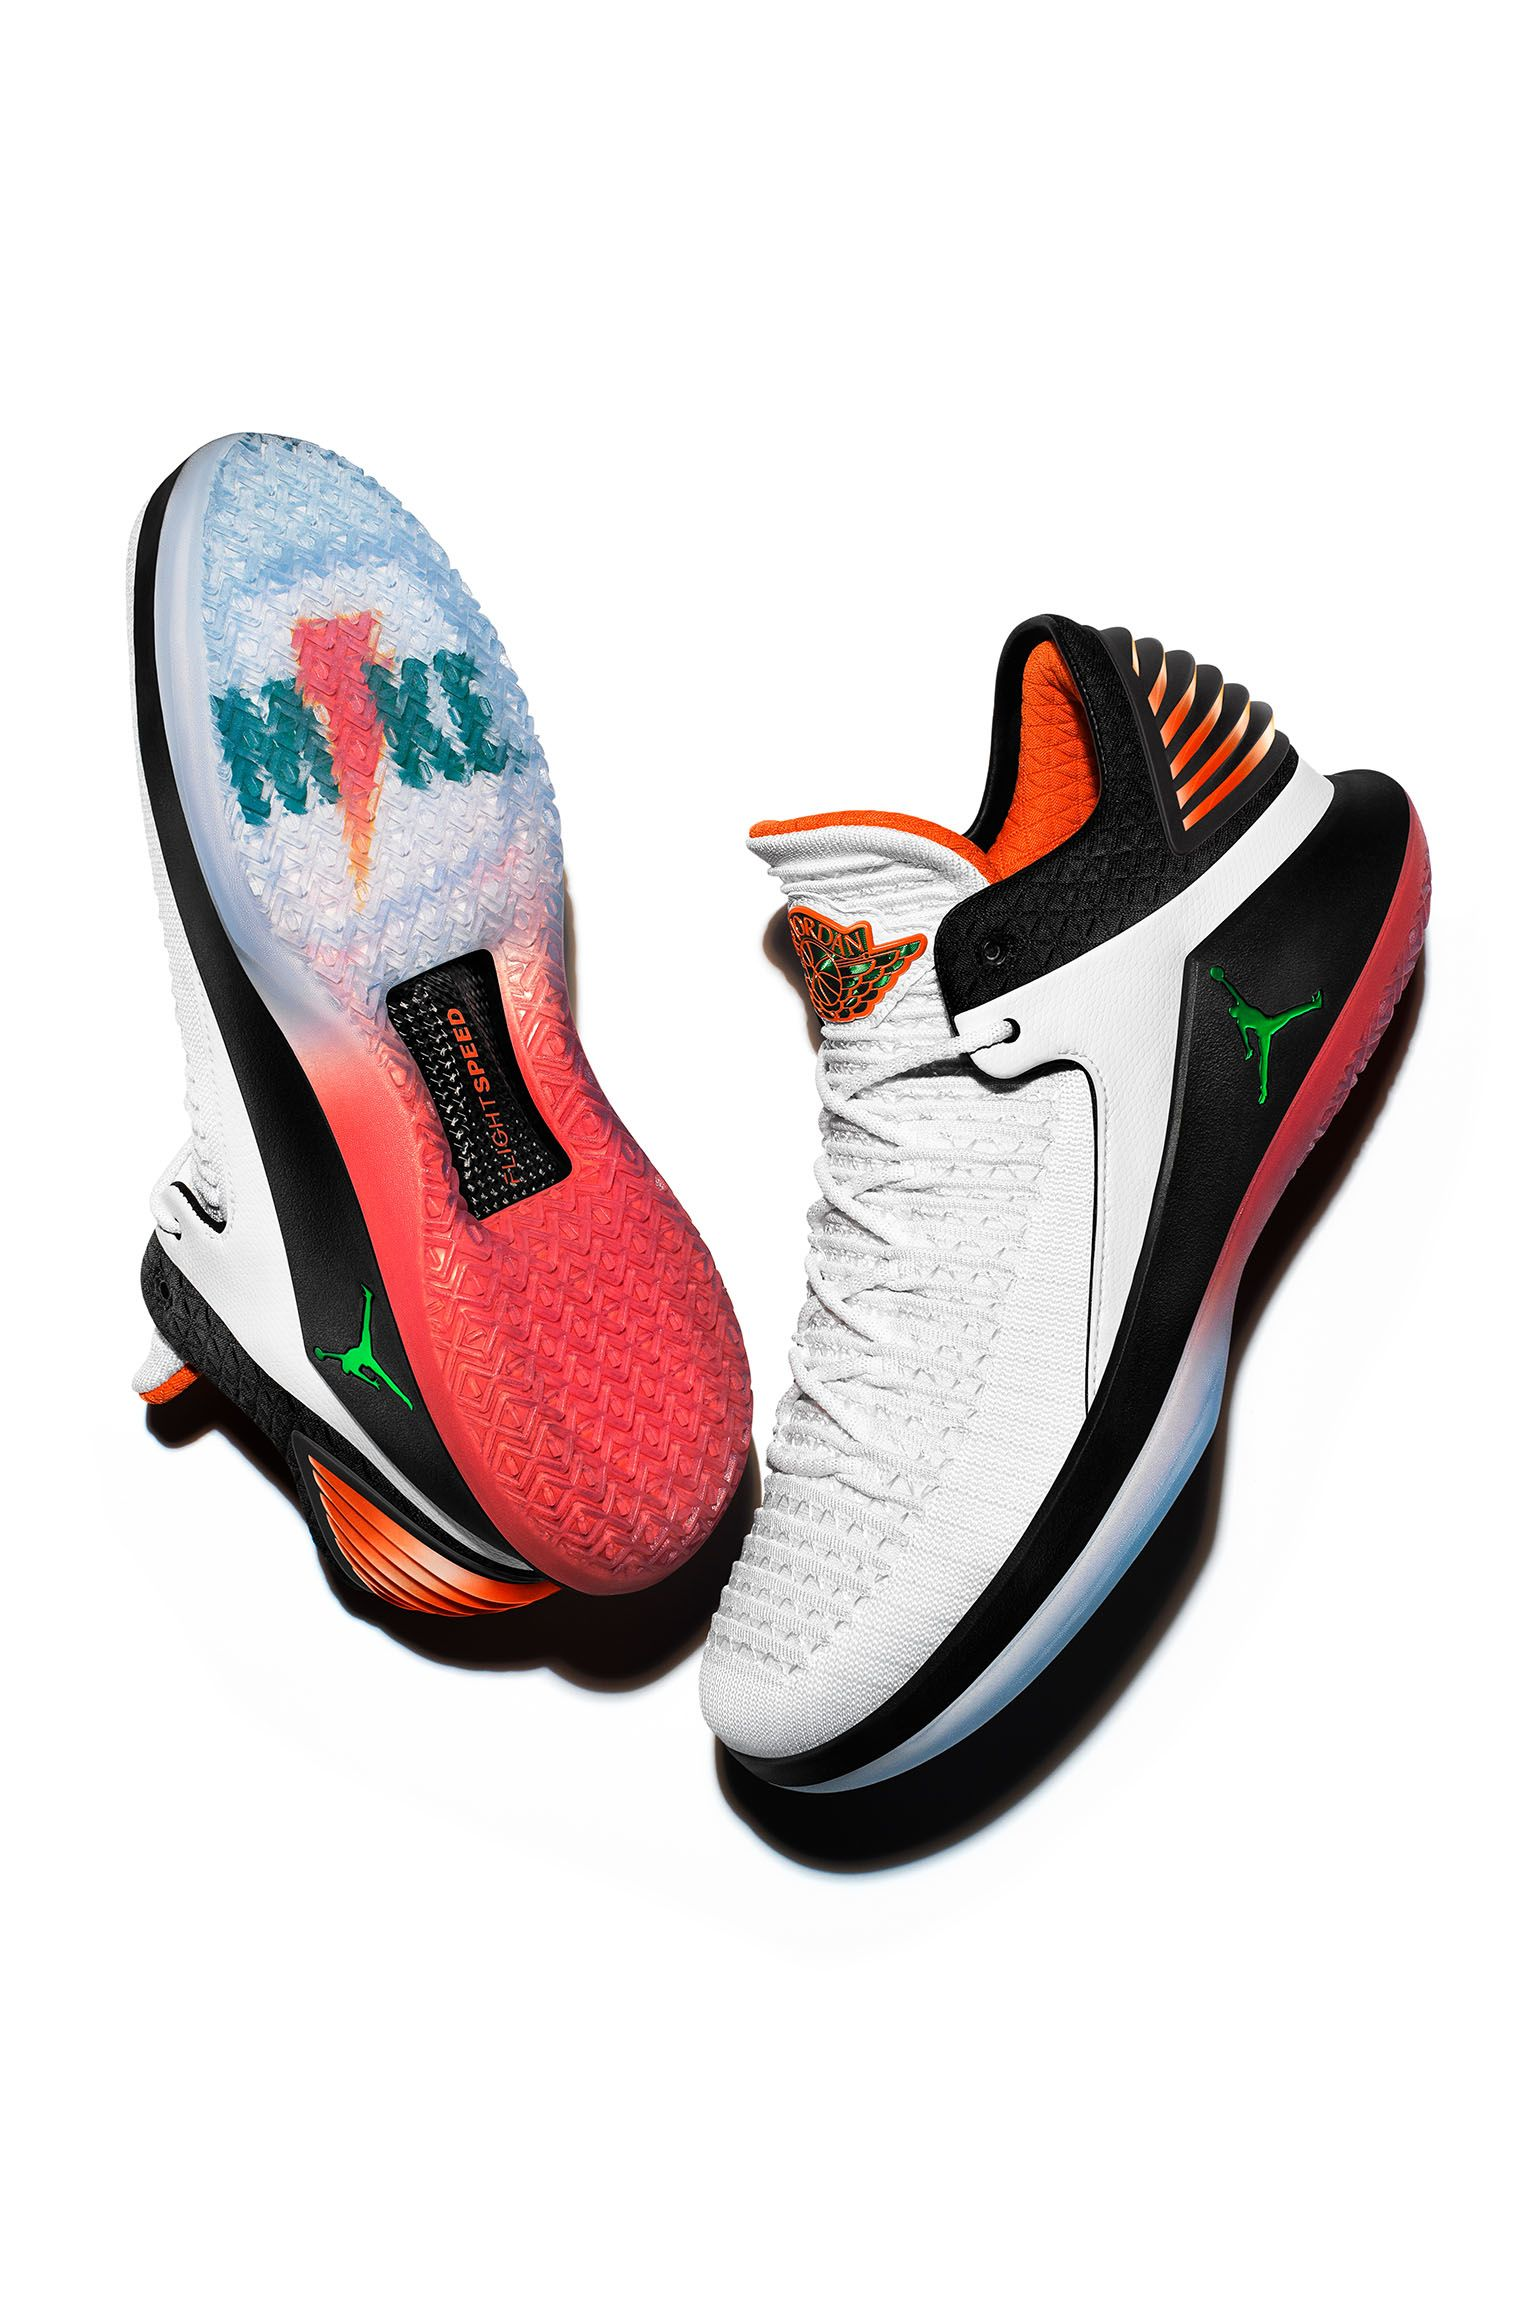 Air Jordan 32 Low 'Like Mike' Release Date